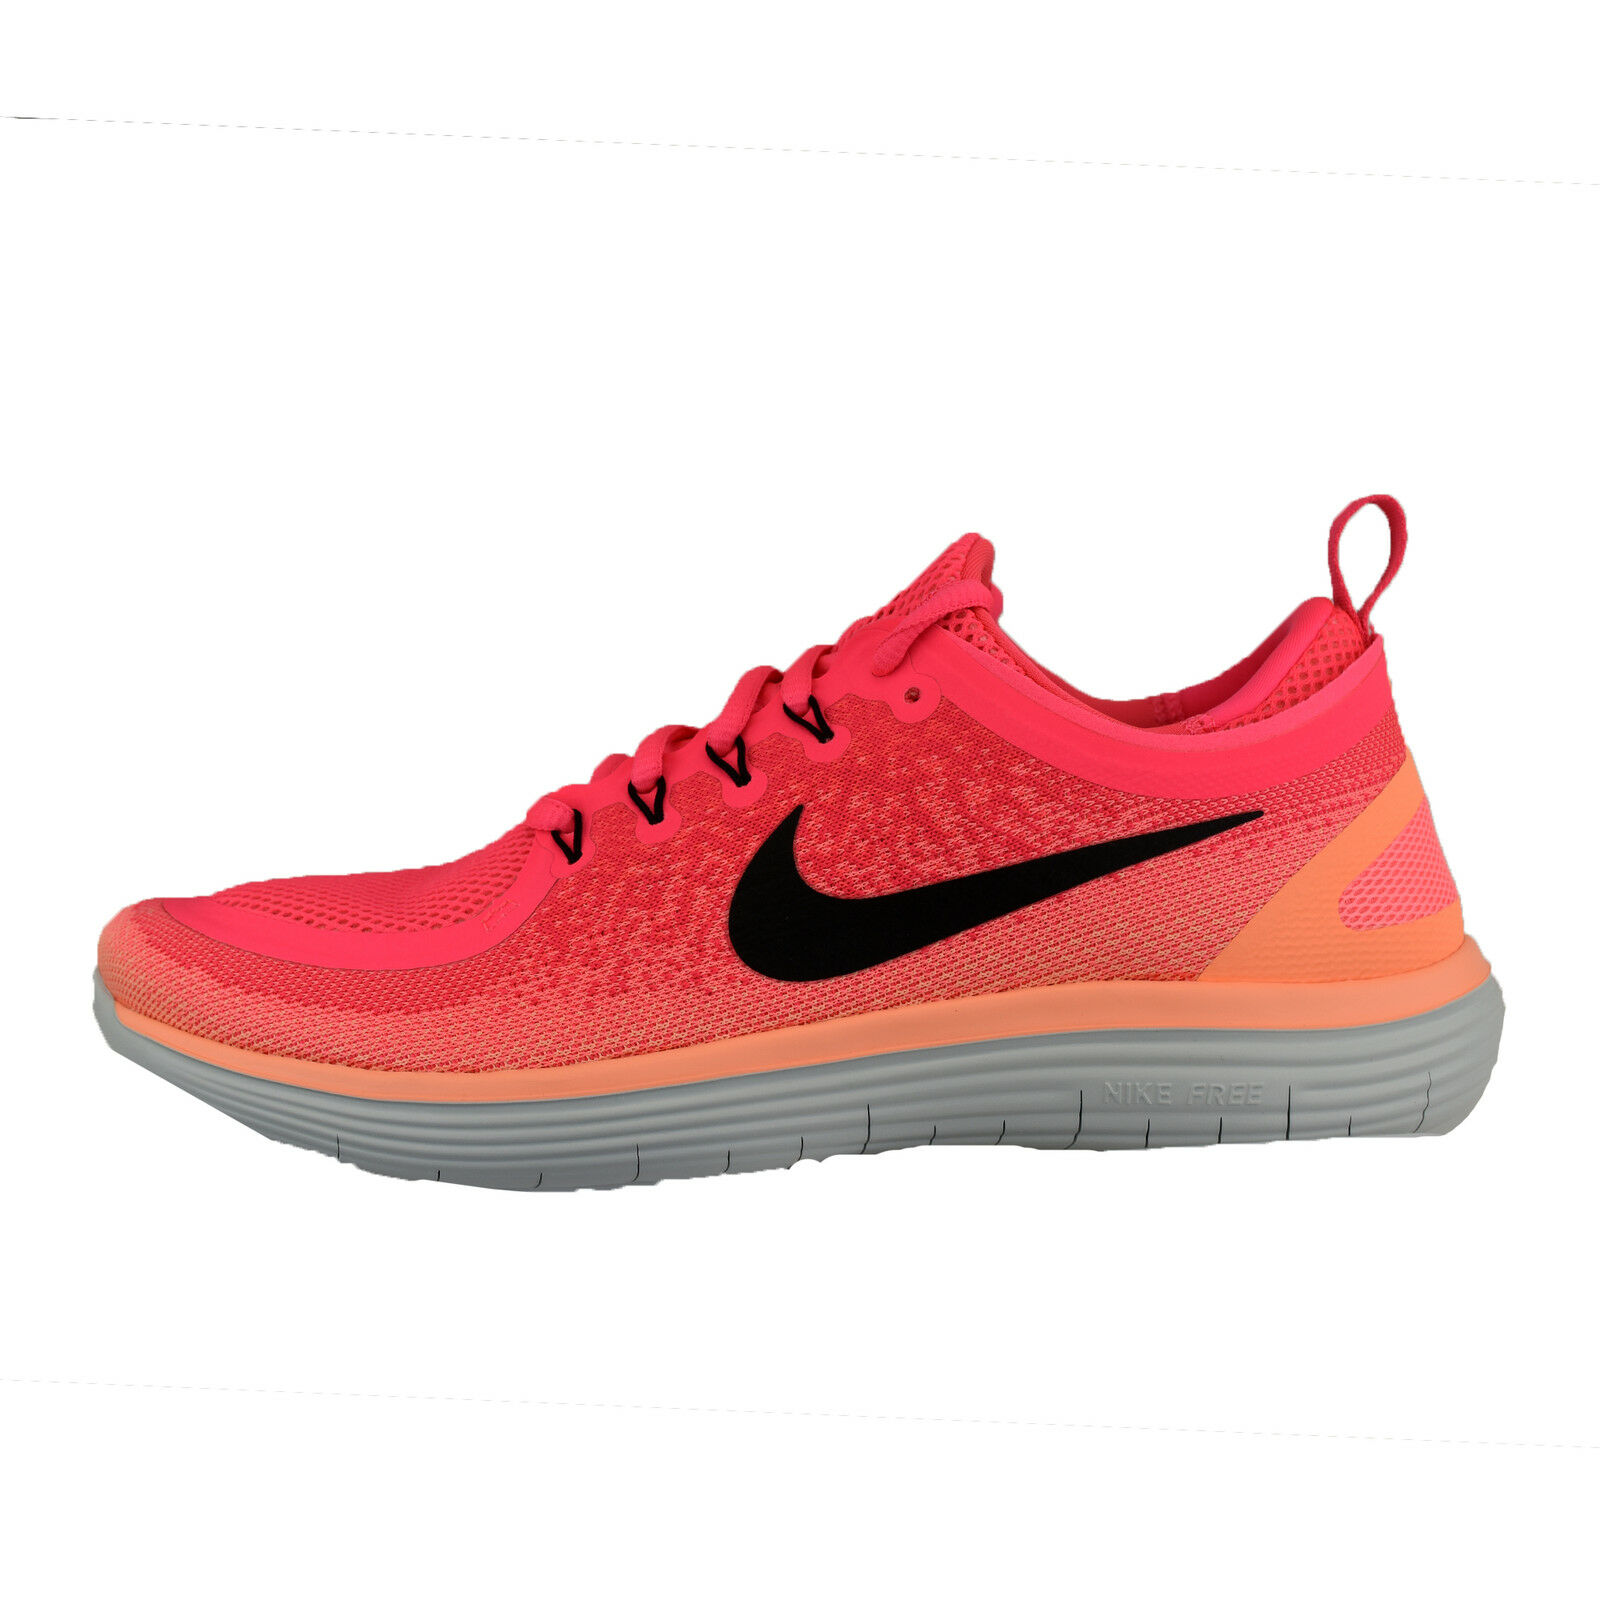 WMNS Nike Free RN Distance 2 Running Shoes Casual Trainers